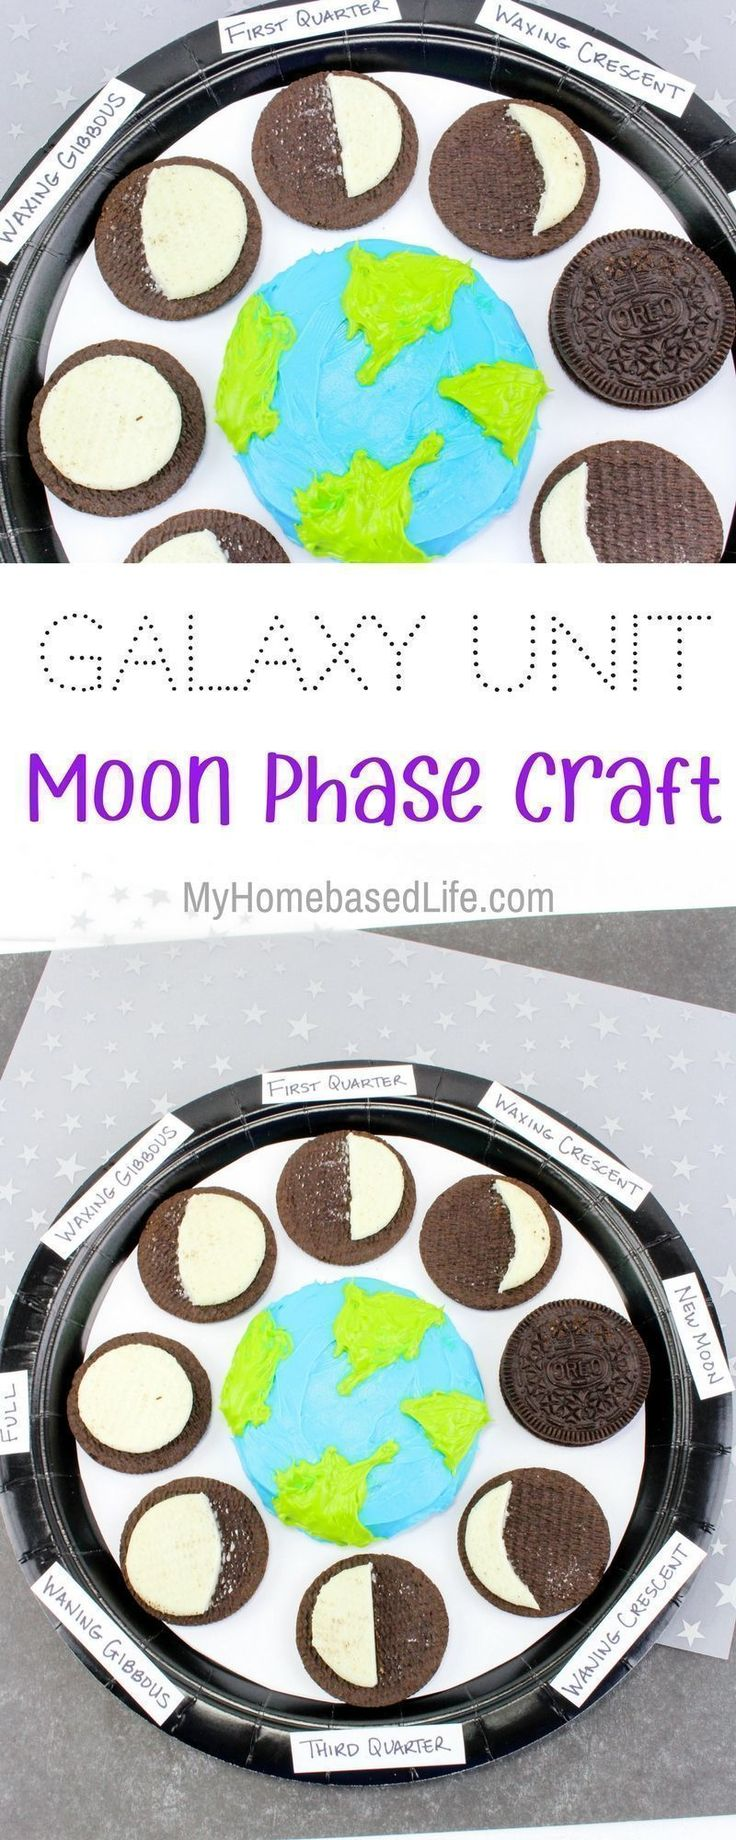 Galaxy Unit: Moon Phases Learning Craft. A great fun way to teach children the moon phases that is edible too! Print your free educational worksheets that go along with this kids activity. | #homeschoolworksheets | #kidsactivity | #kidscraft | Kids Craft | Kids Activity | Kids Science Lesson | Homeschool Activity | Homeschool Worksheets | Solar System Activity | Moon Phases Craft for kids | via @myhomebasedlife